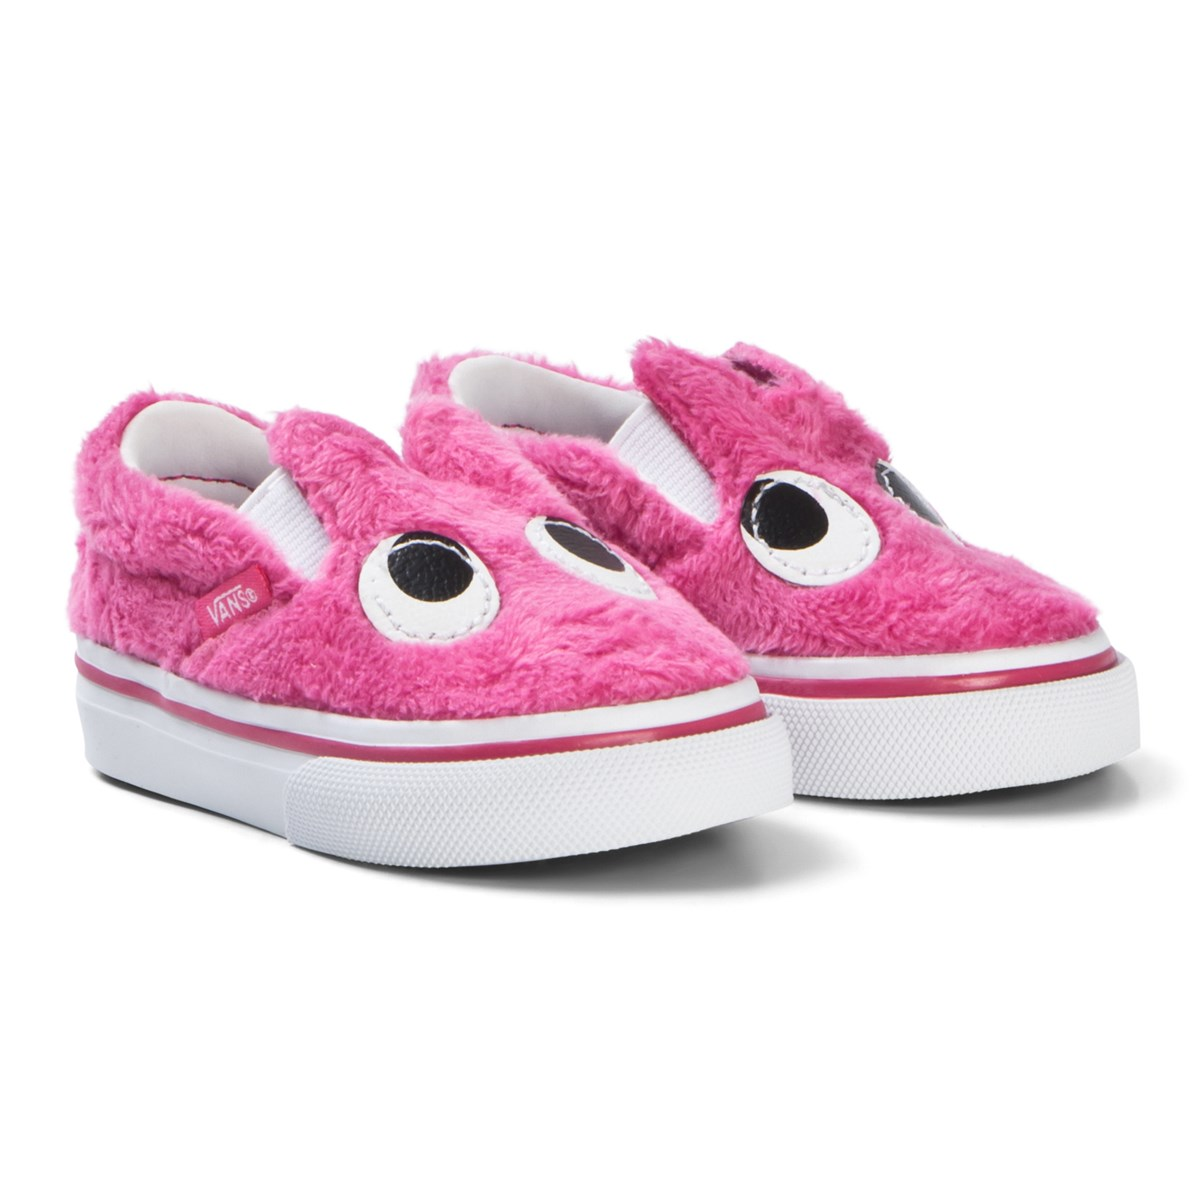 Newborn Shoes Vans Vans Magenta Party Fur Slip On Friend Shoes Babyshop